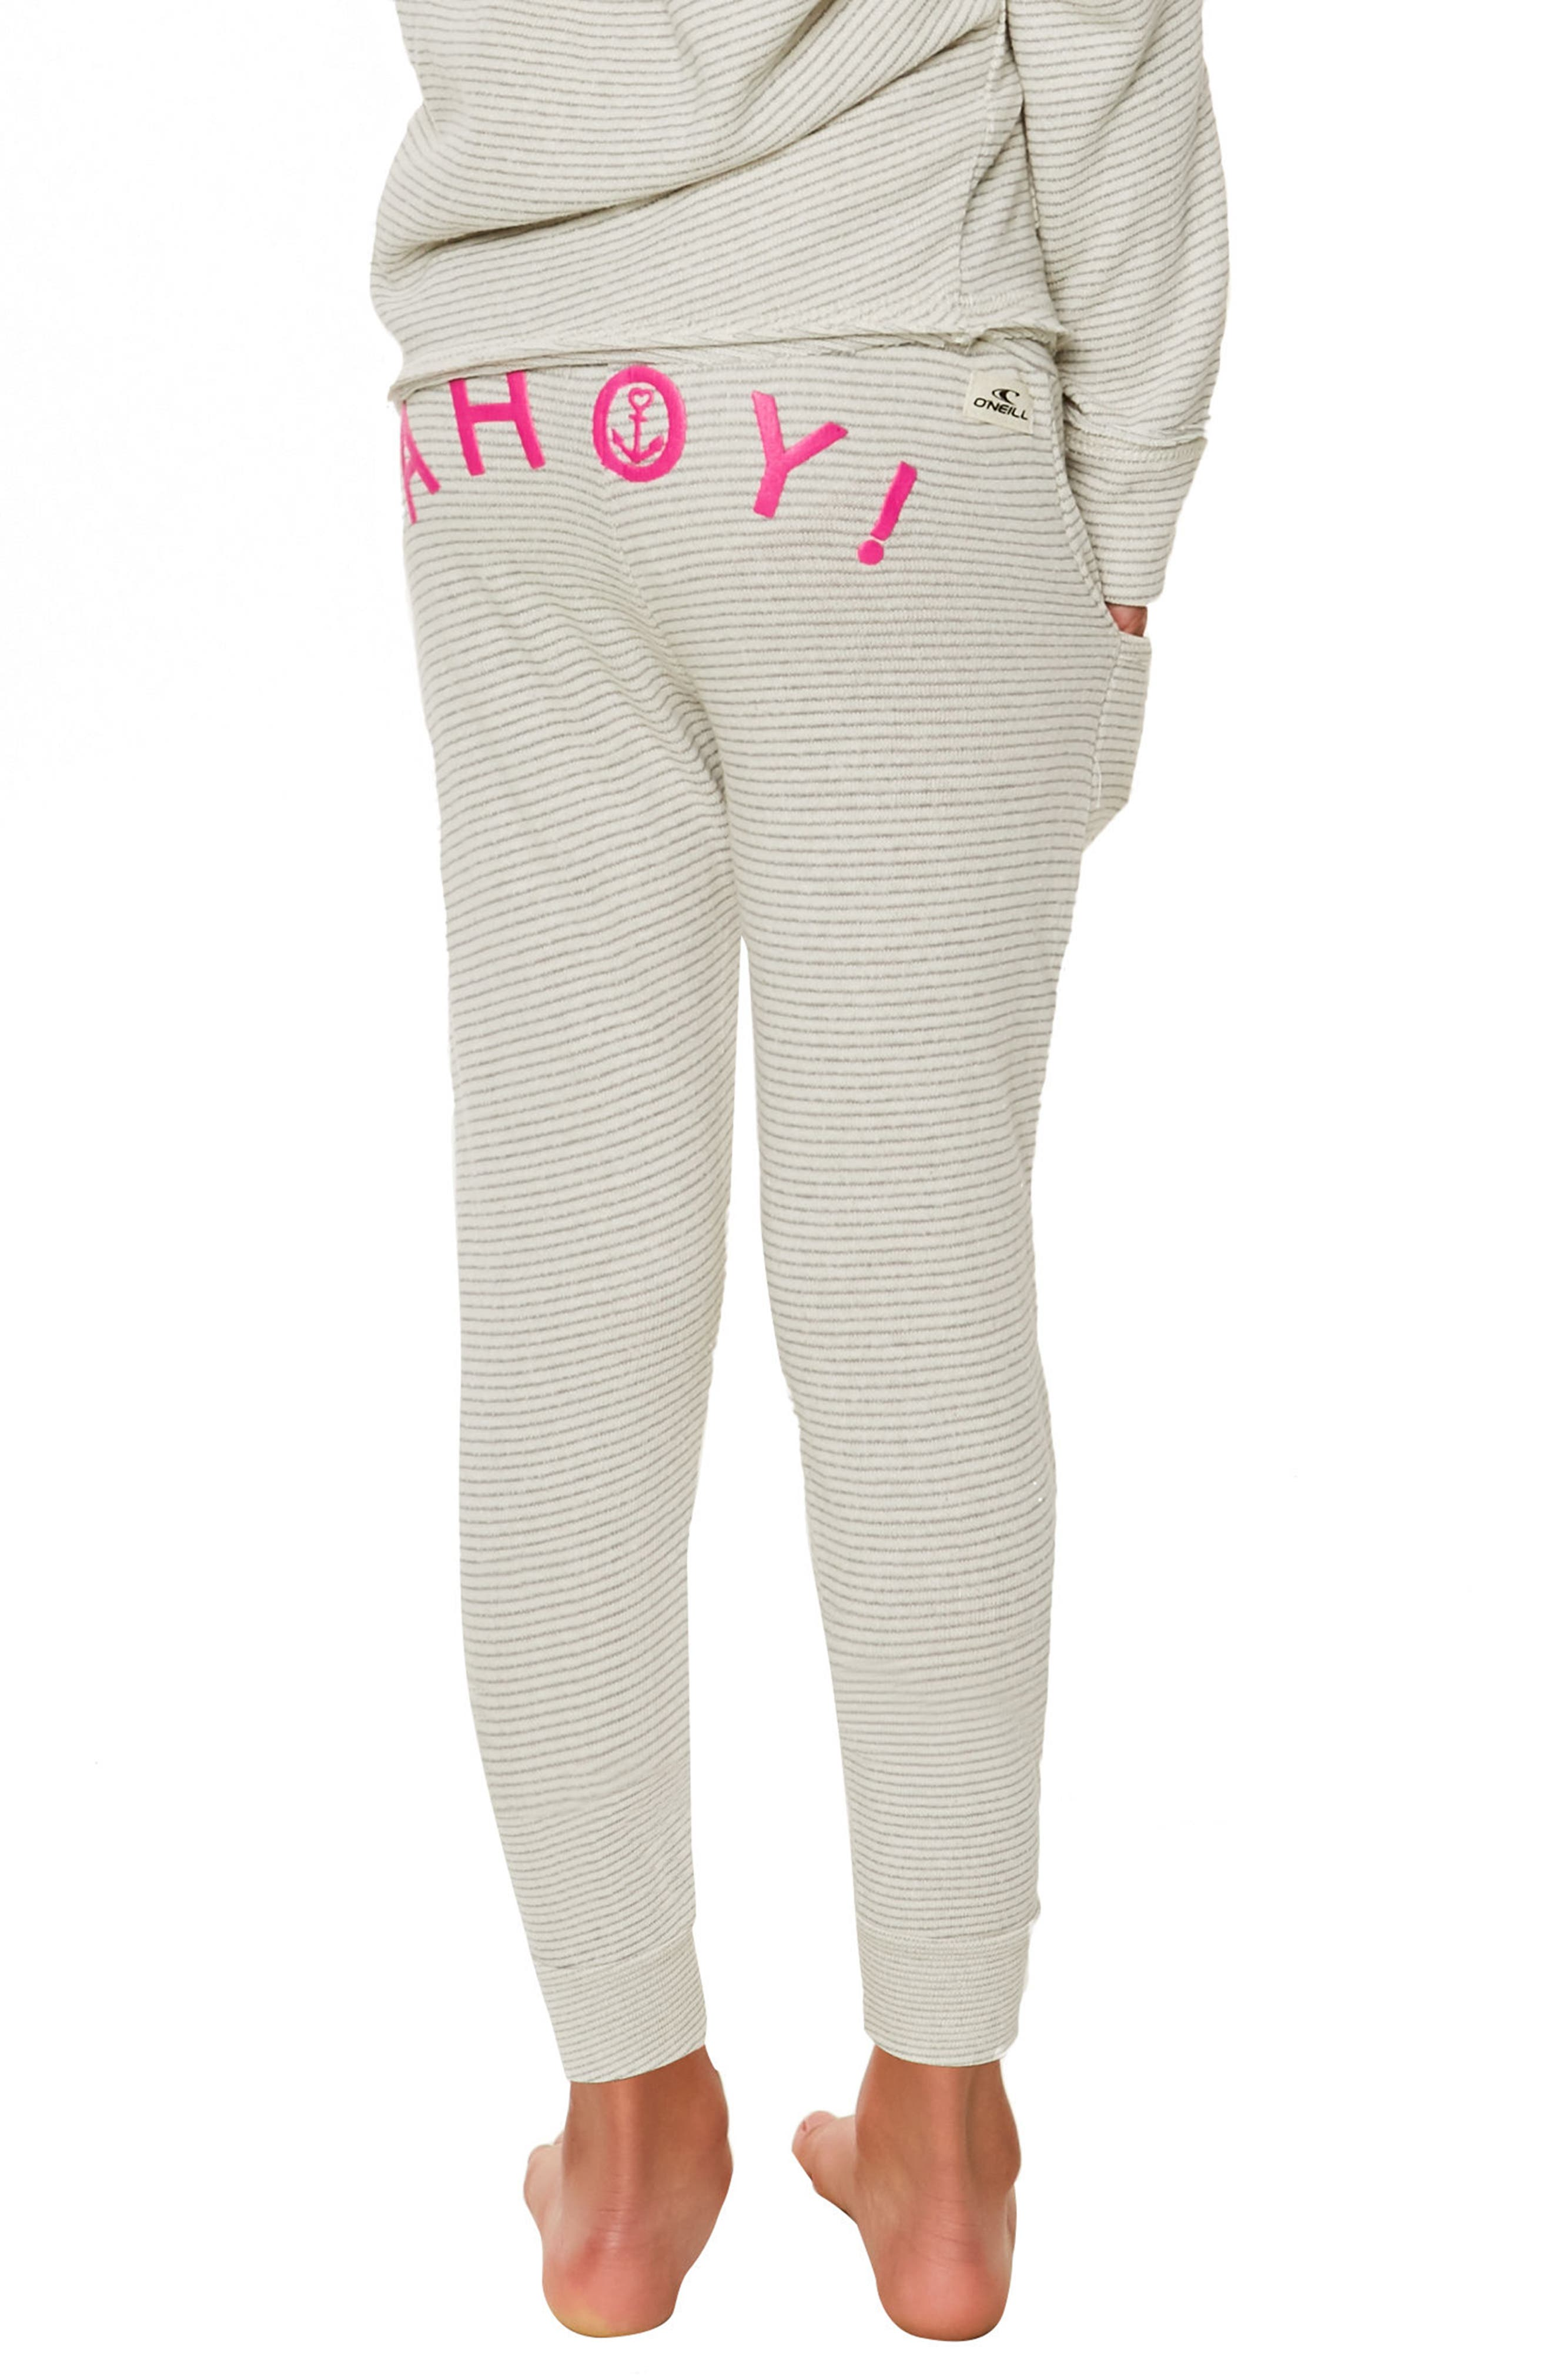 Shore Ahoy! French Terry Pants,                             Alternate thumbnail 5, color,                             Grey - Gry